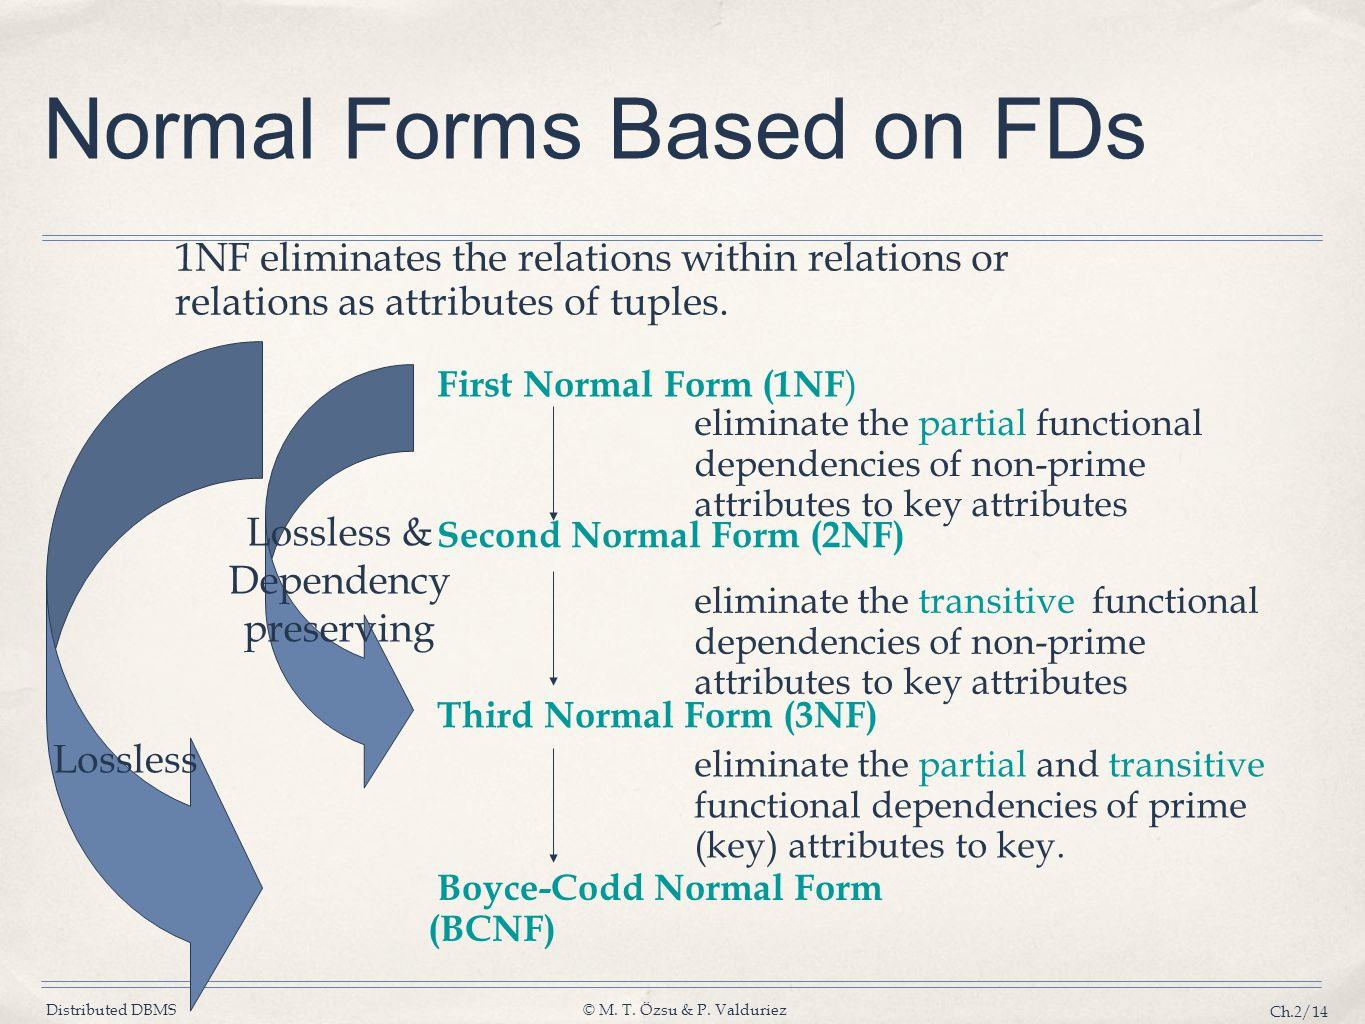 Distributed DBMS© M. T. Özsu & P. Valduriez Ch.2/14 Normal Forms Based on FDs Second Normal Form (2NF) Third Normal Form (3NF) Boyce-Codd Normal Form